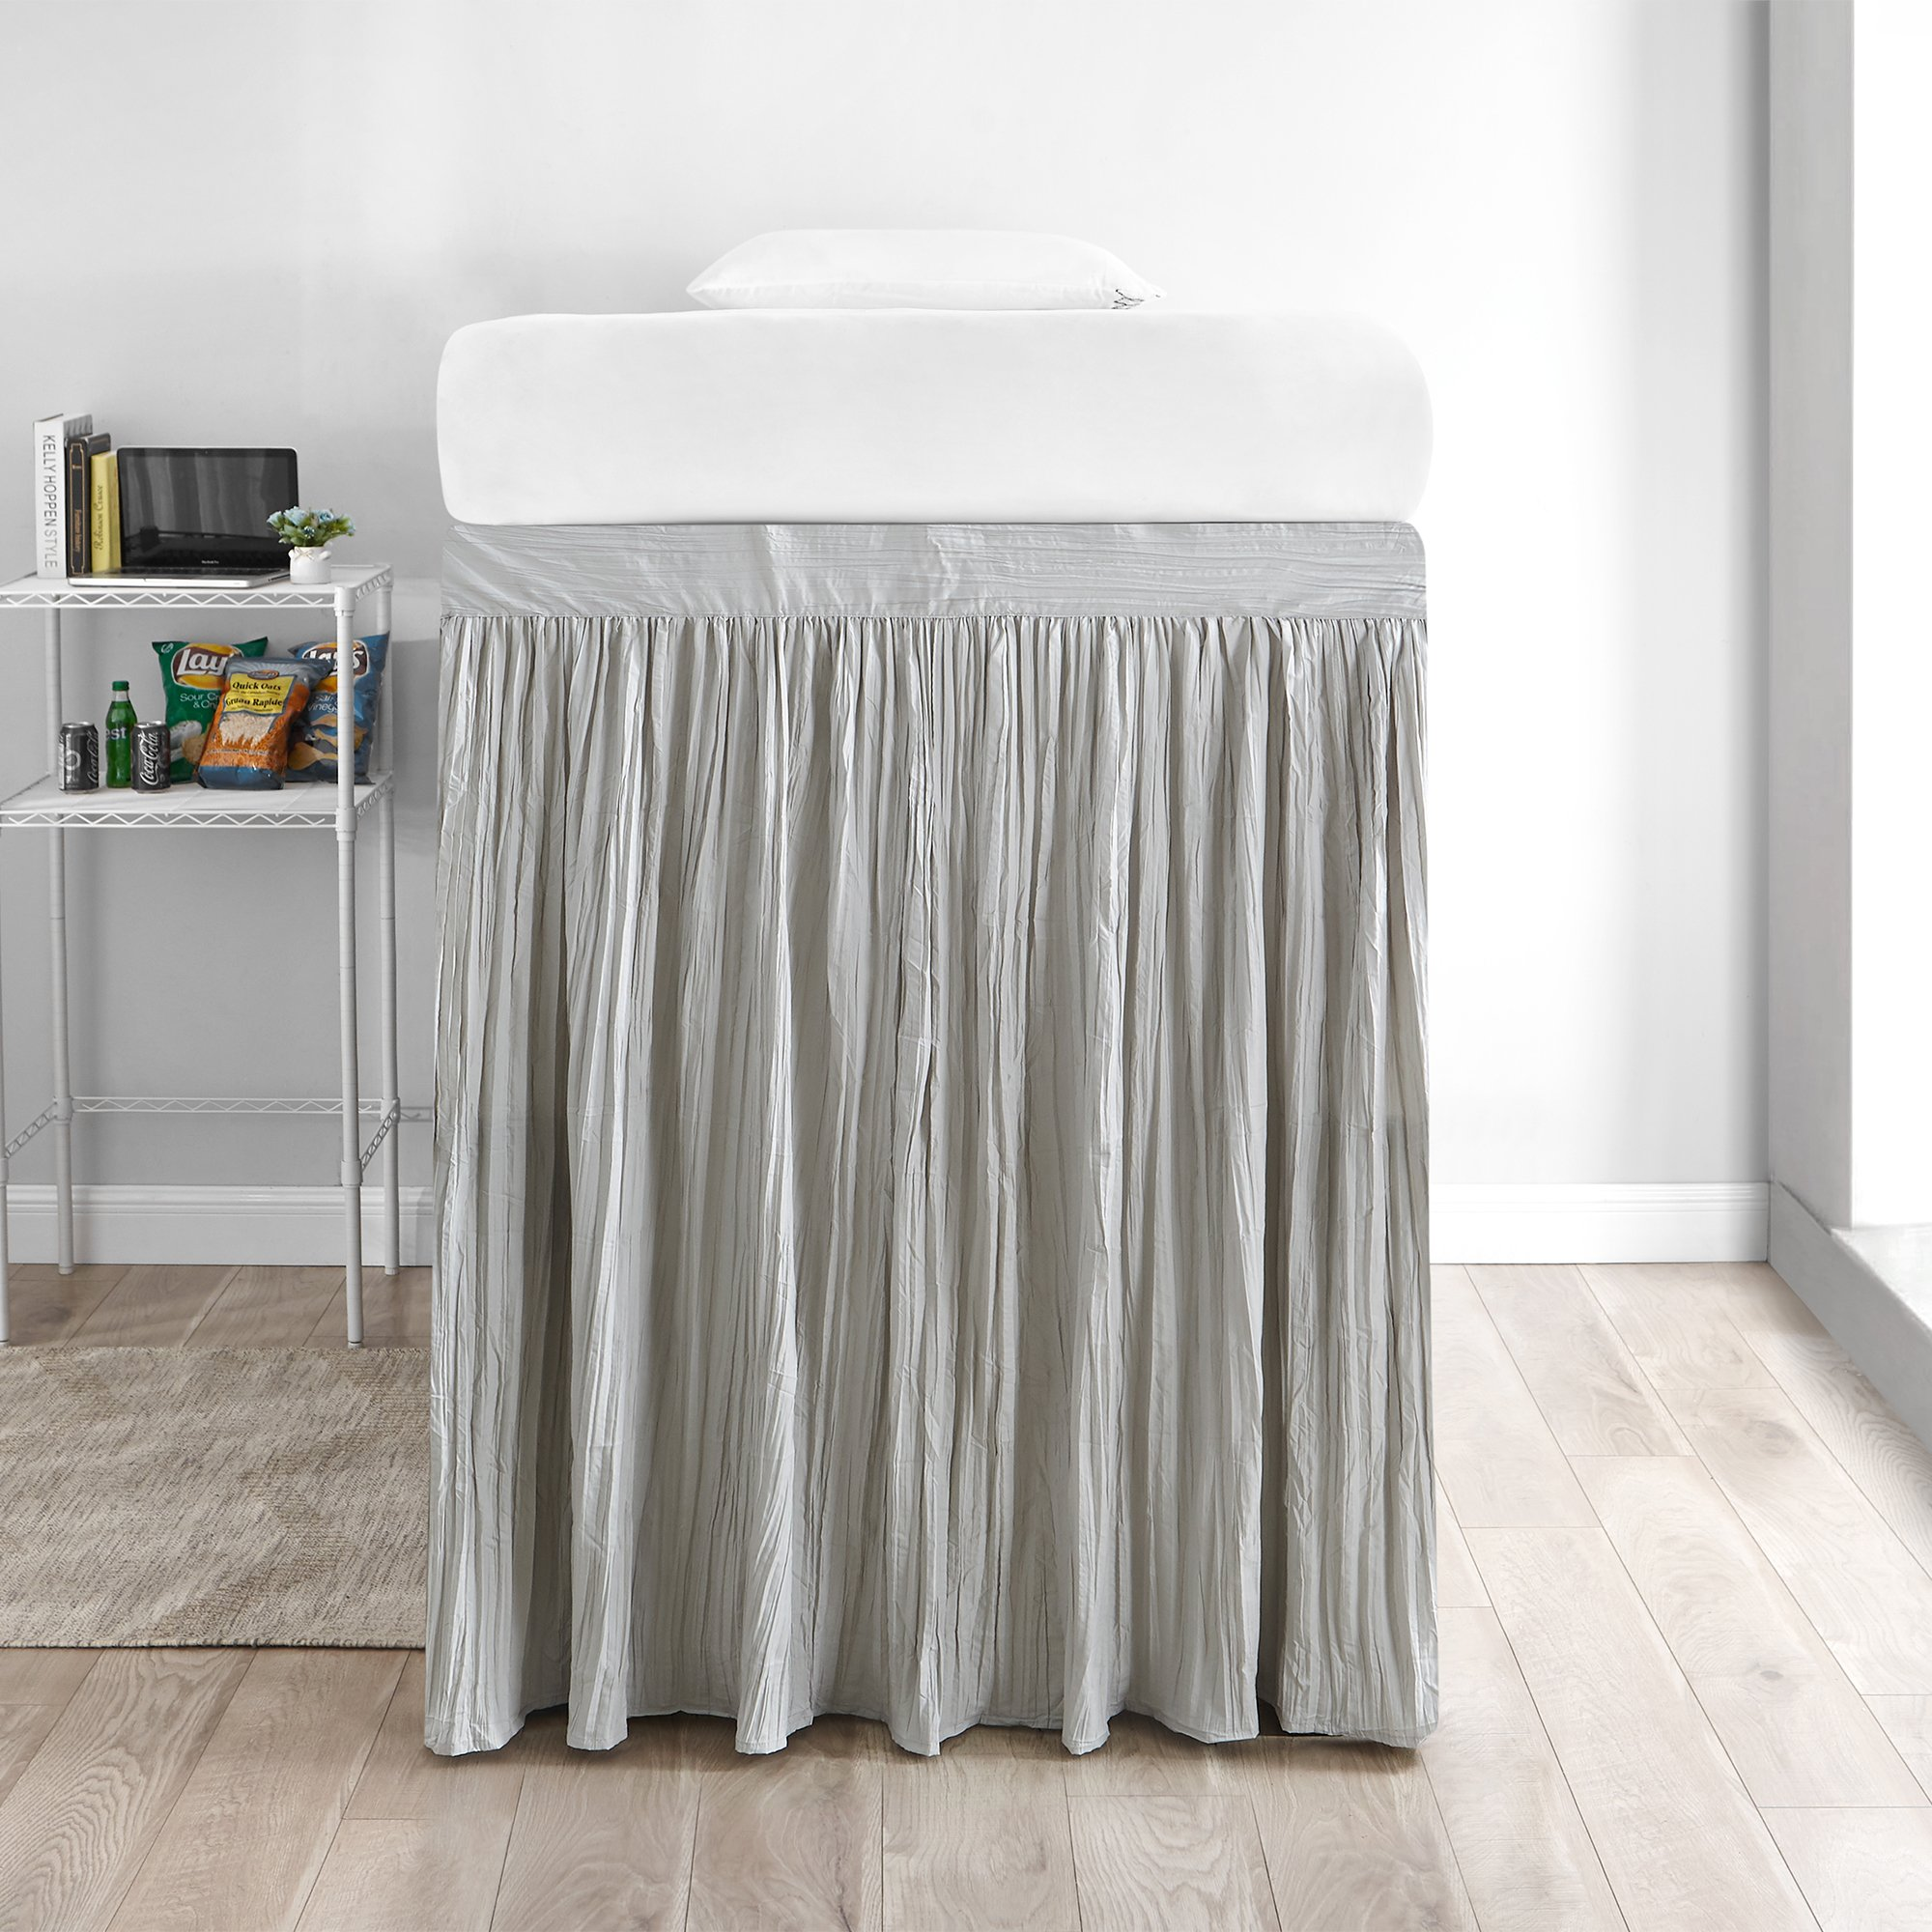 DormCo Crinkle Extended Bed Skirt Twin XL (3 Panel Set) - Silver Birch